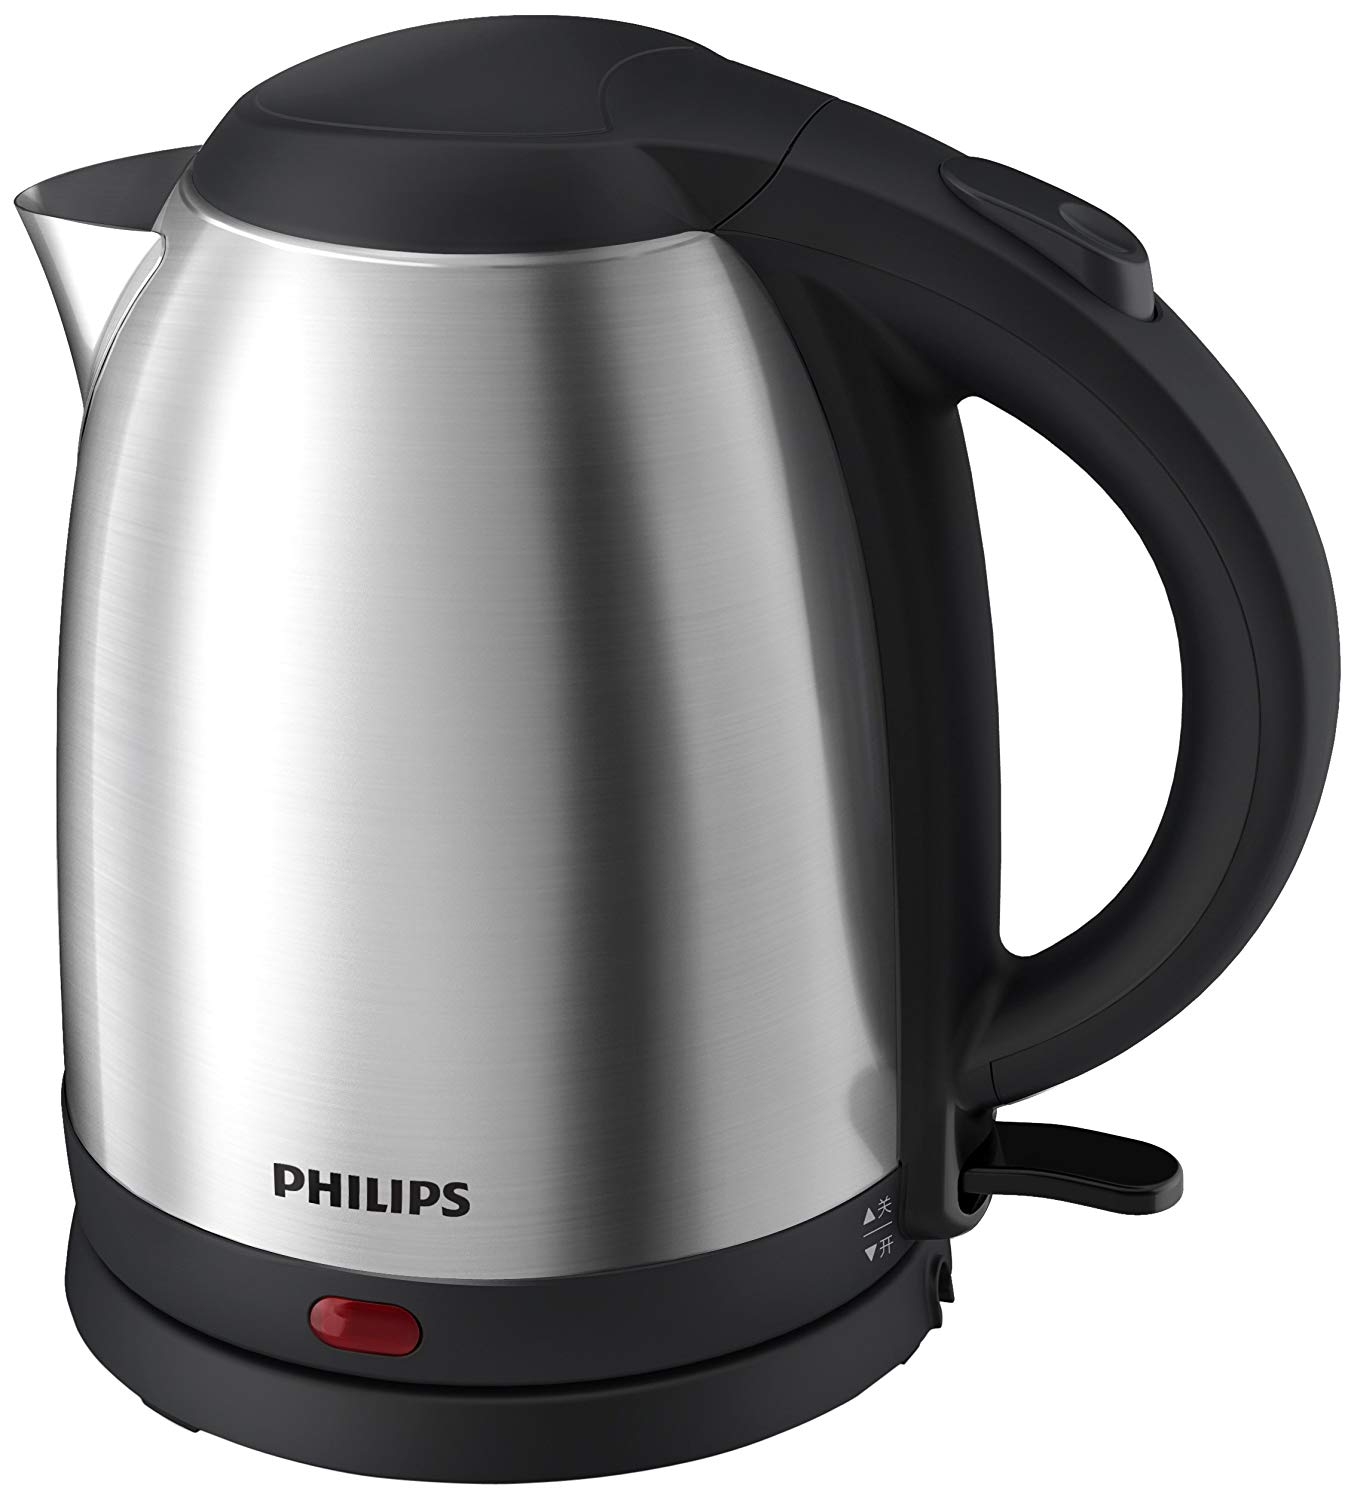 Philips HD9306 1.5-Litre Electric Kettle